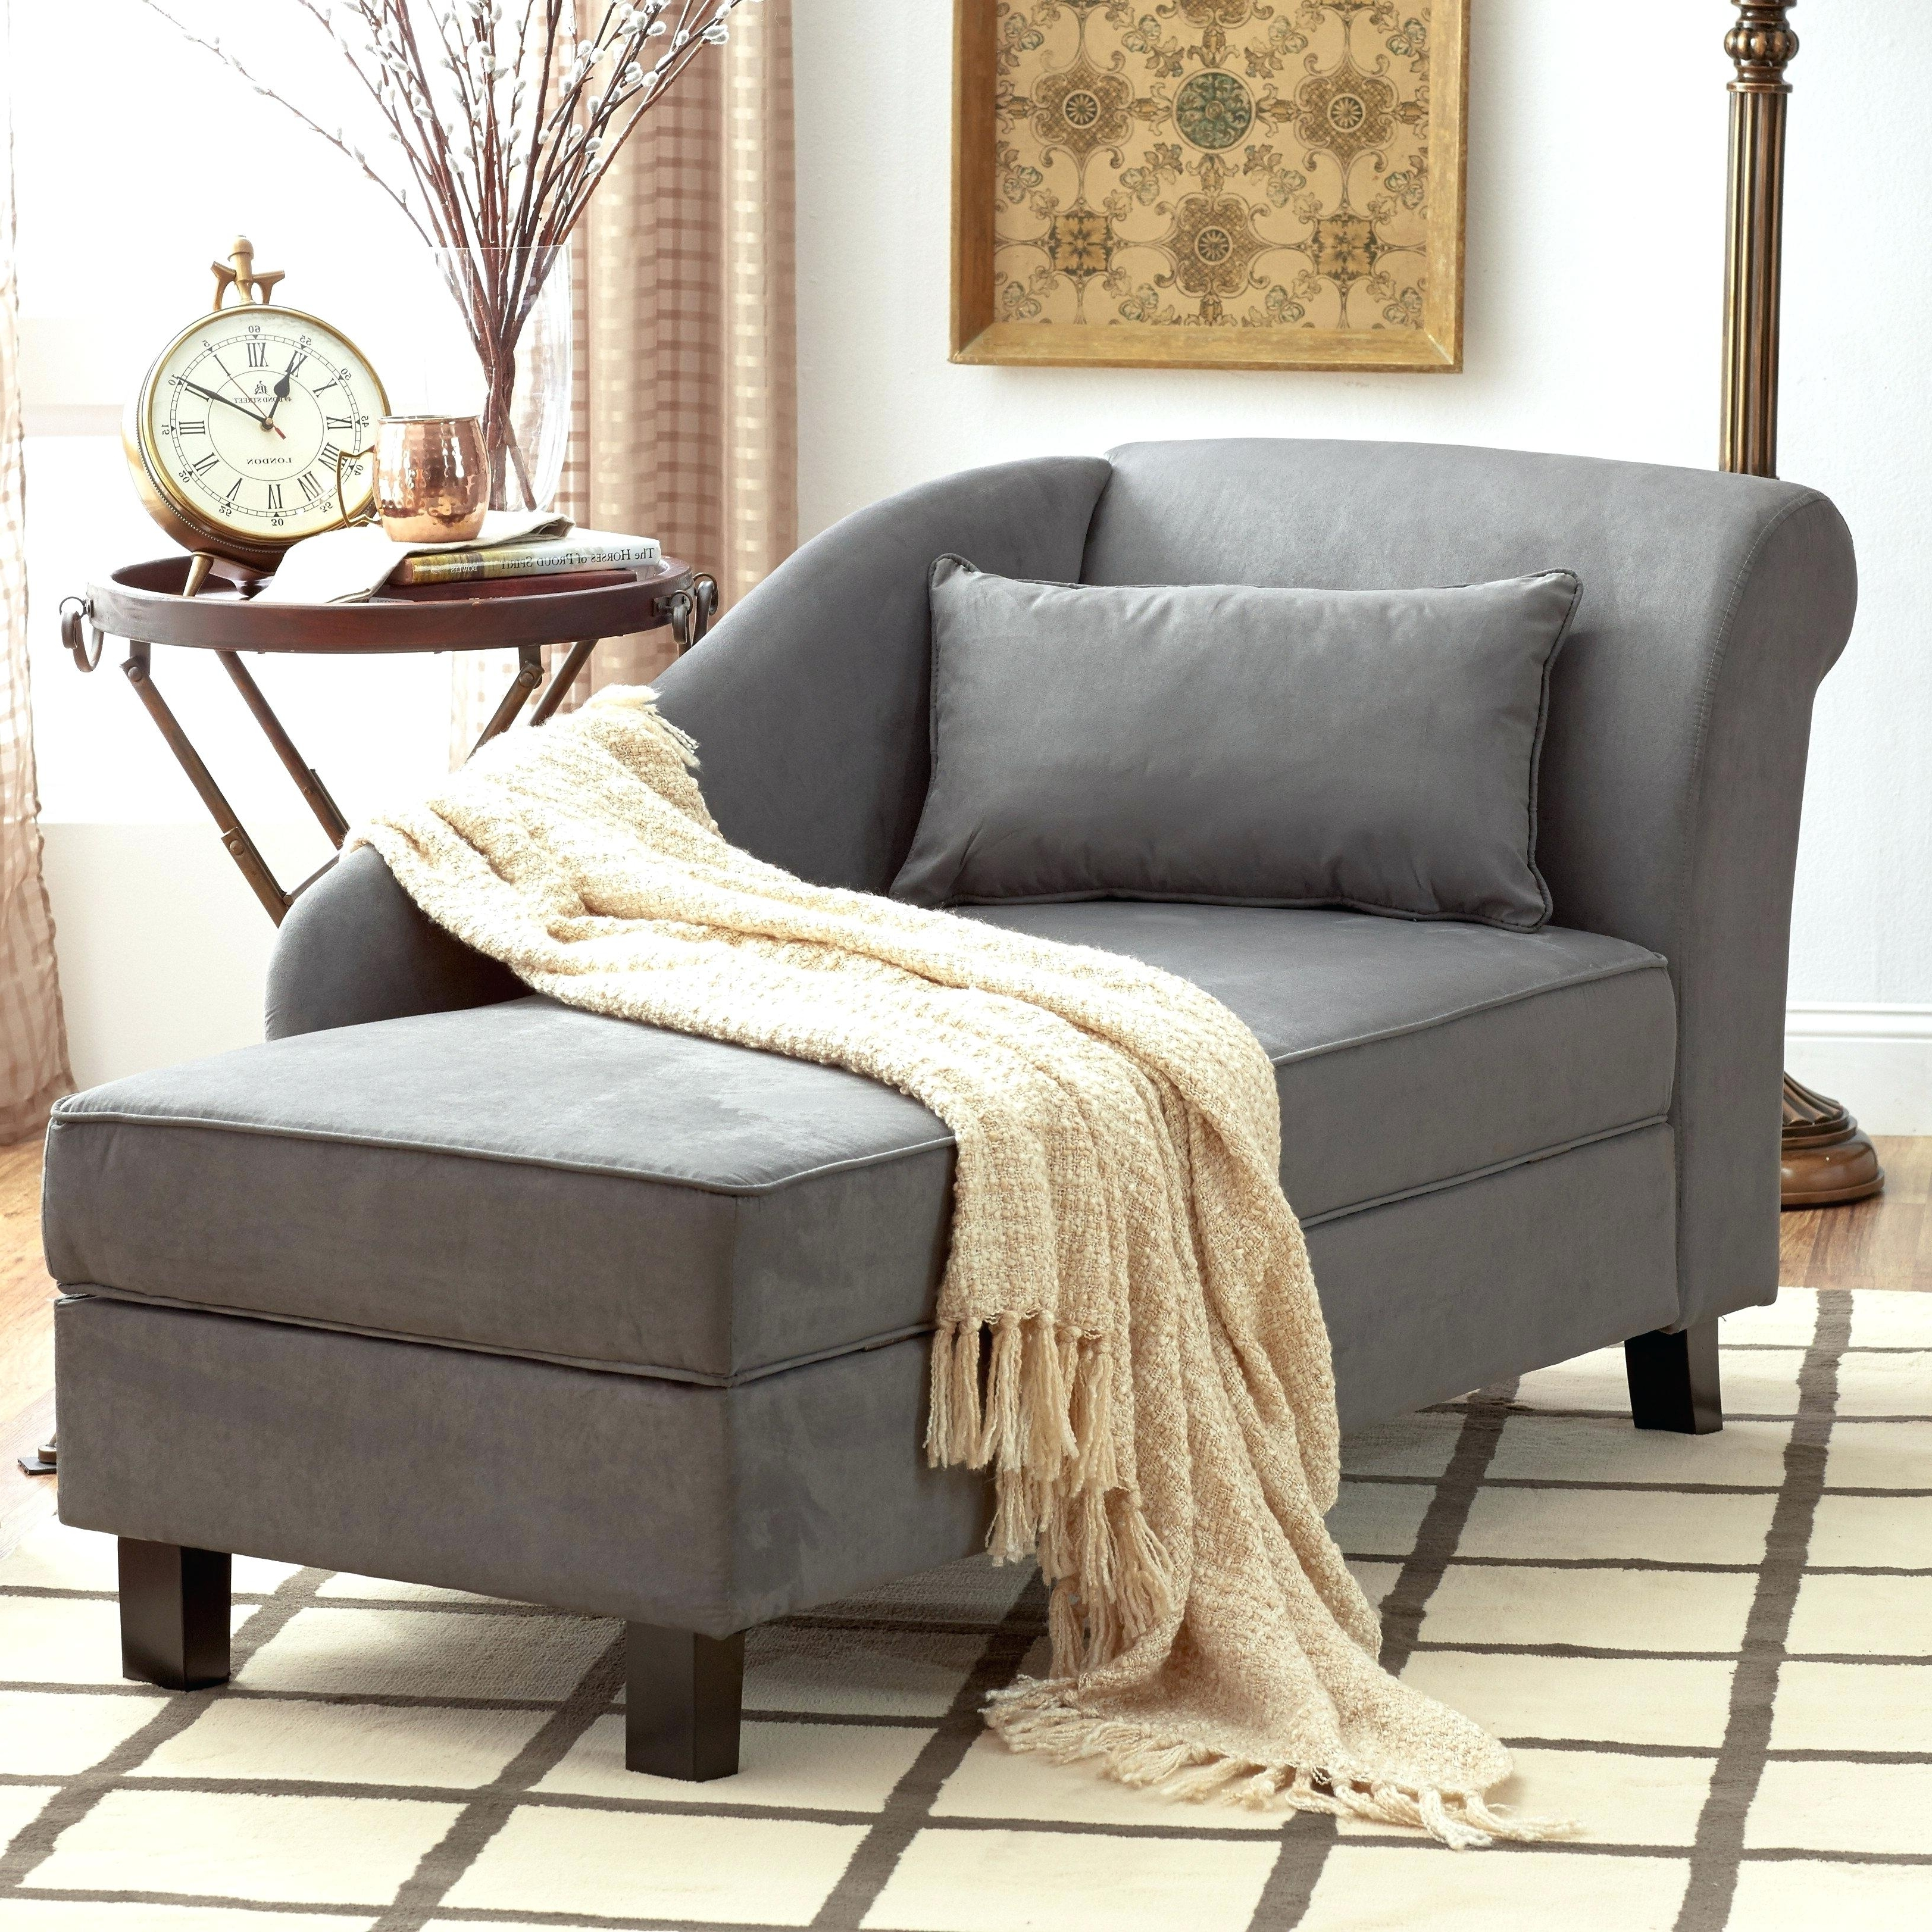 Indoor Chaise Lounge Slipcovers With Best And Newest Chaise Lounge With Arms S Chair Slipcover No Indoor – Province De (View 7 of 15)